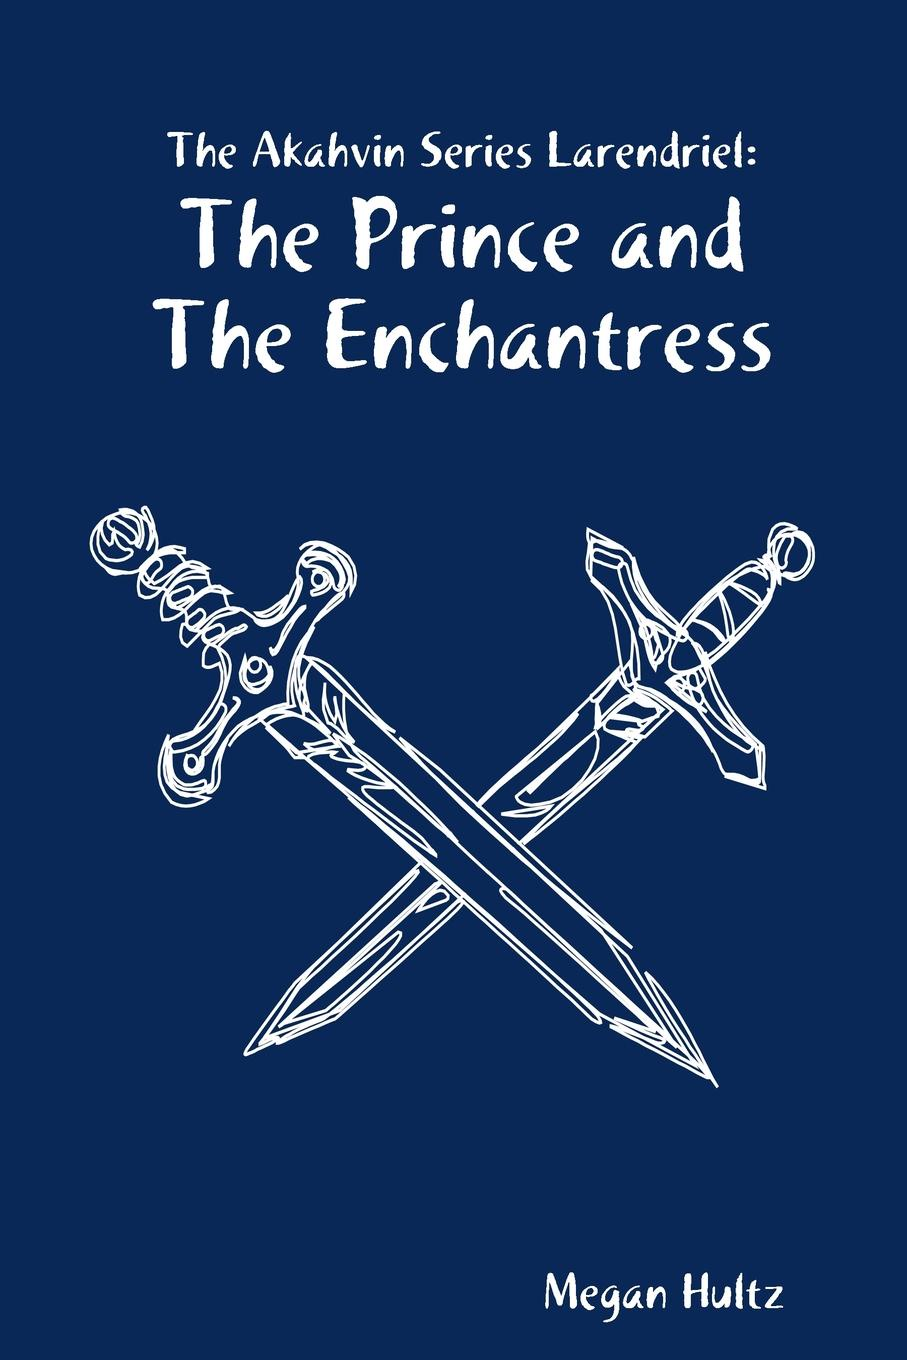 Megan Hultz The Akahvin Series Larendriel. The Prince and The Enchantress lisa jardine the awful end of prince william the silent the first assassination of a head of state with a hand gun